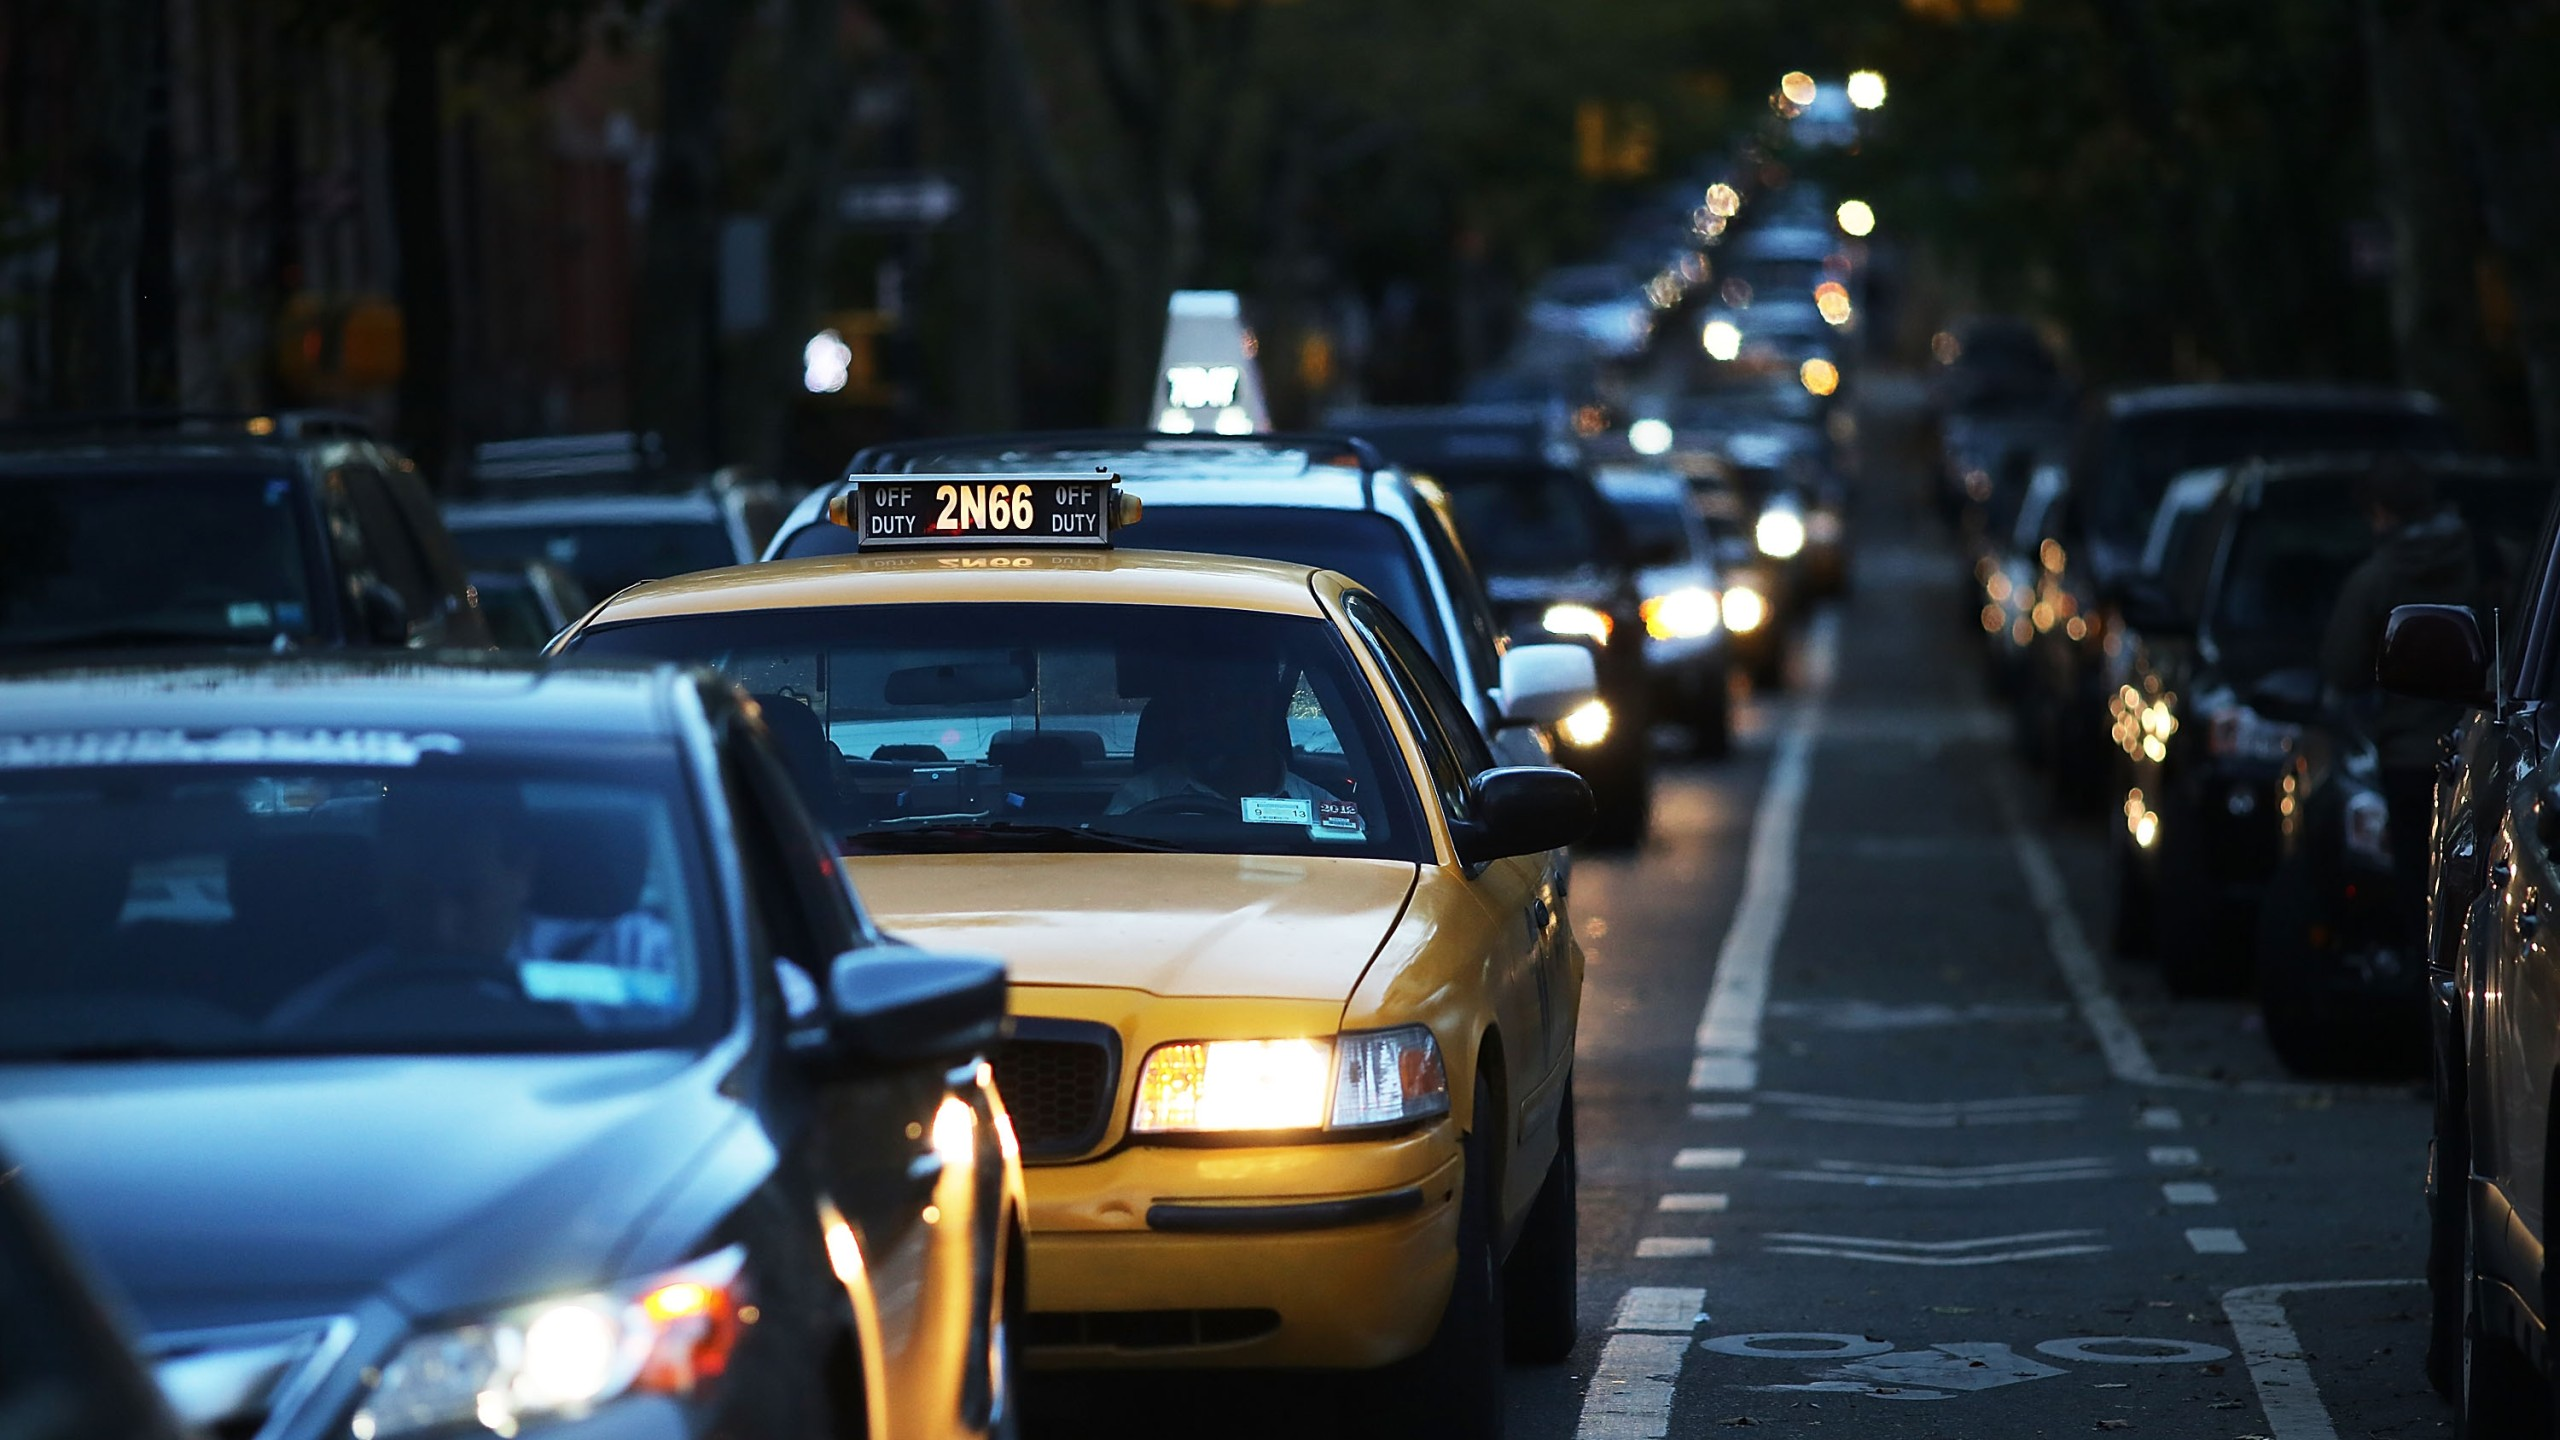 Cars in NYC traffic